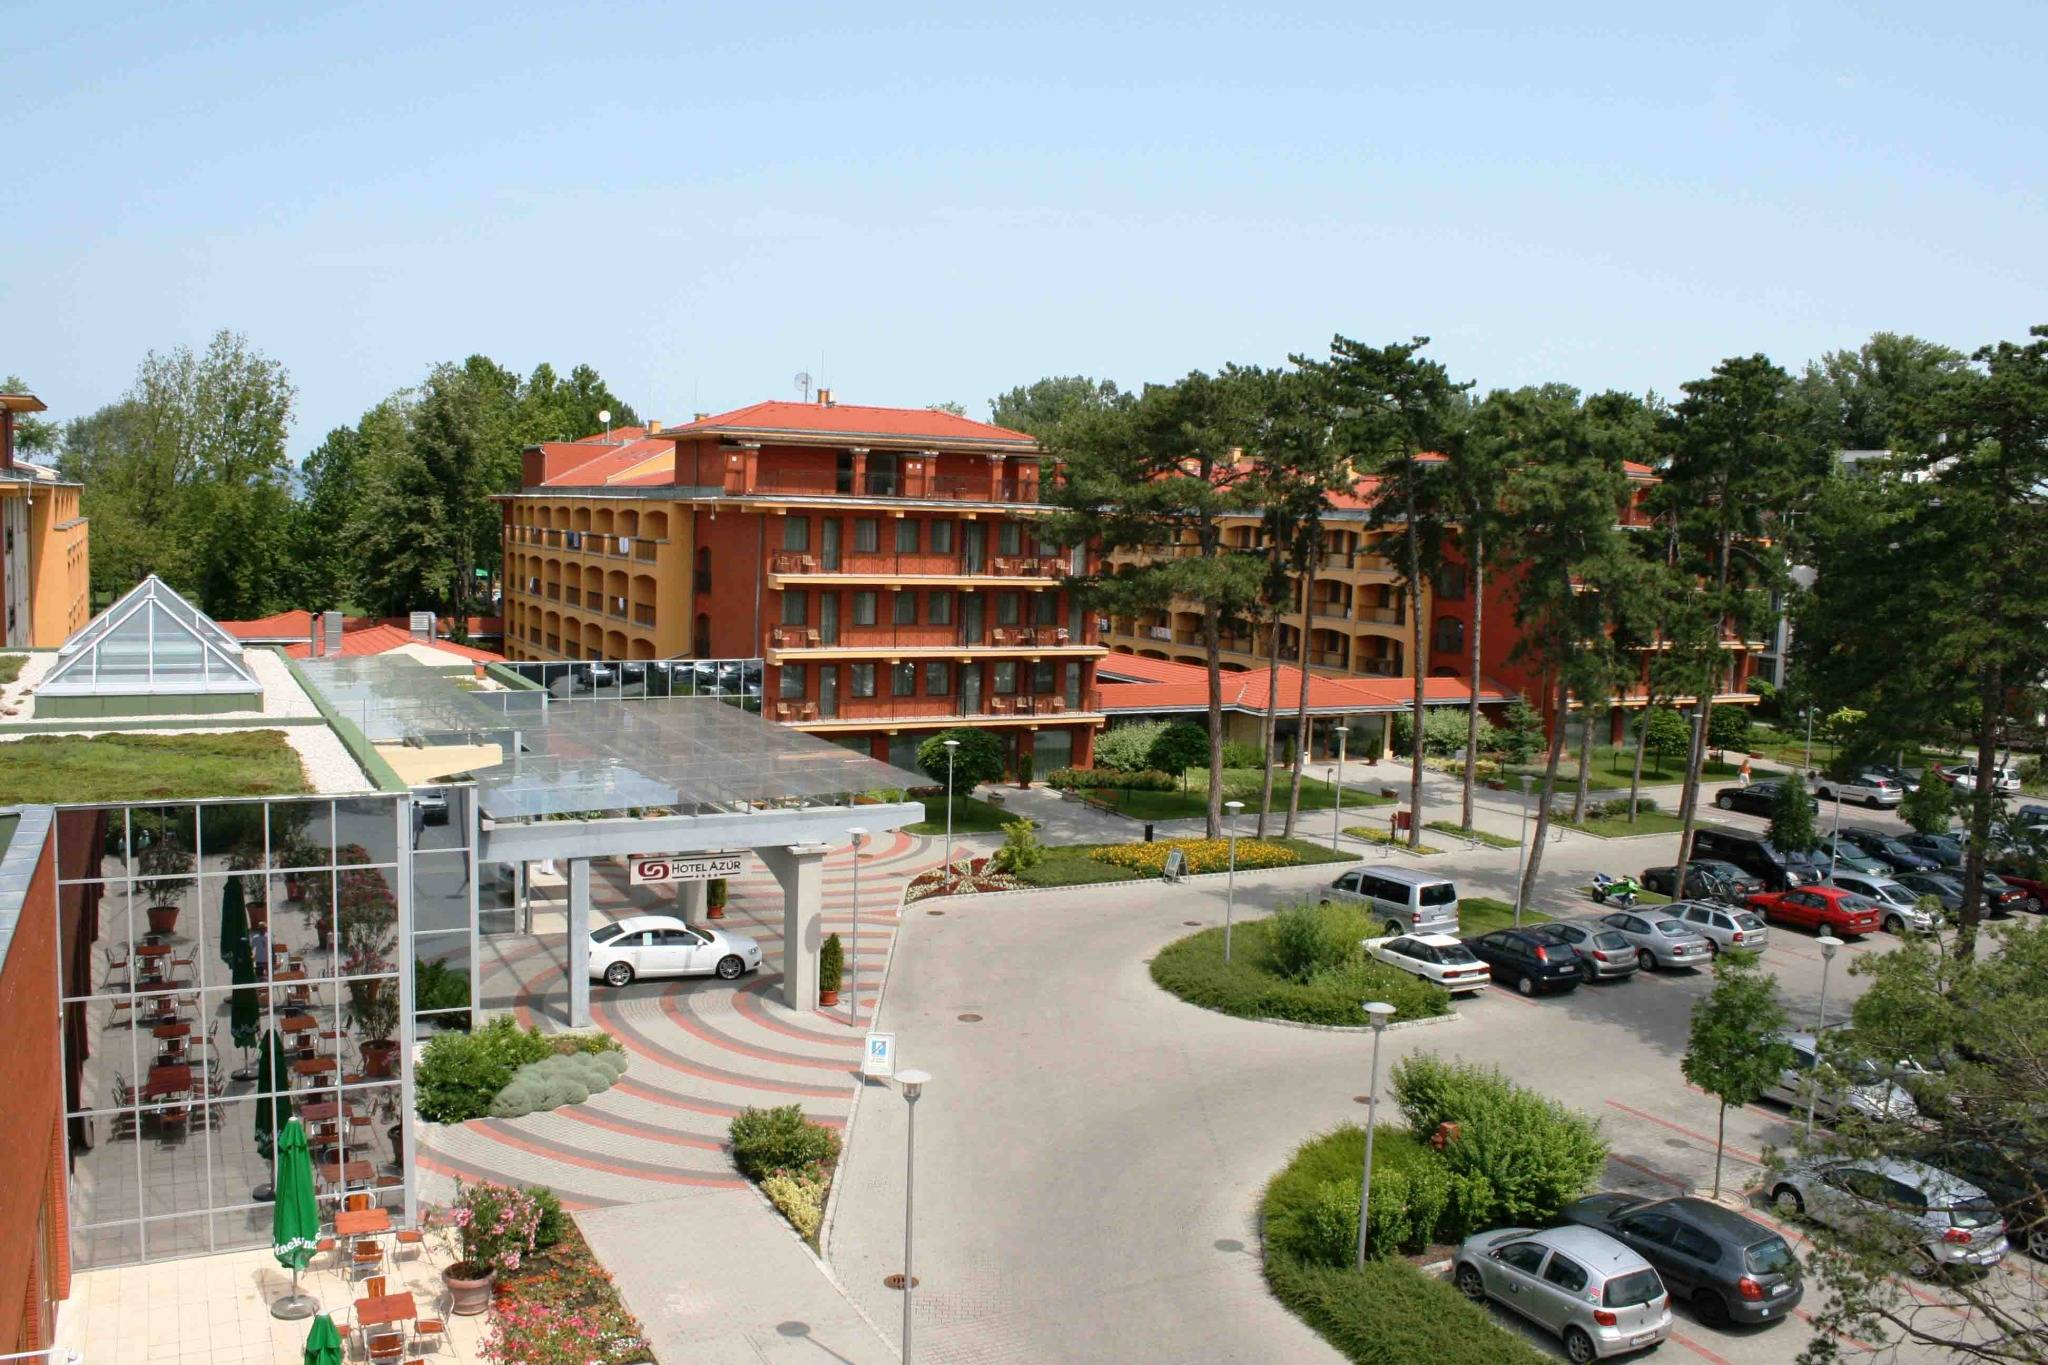 Siofok Hungary  city pictures gallery : Hotel Azur Siofok Hungary Hotel az r si Fok